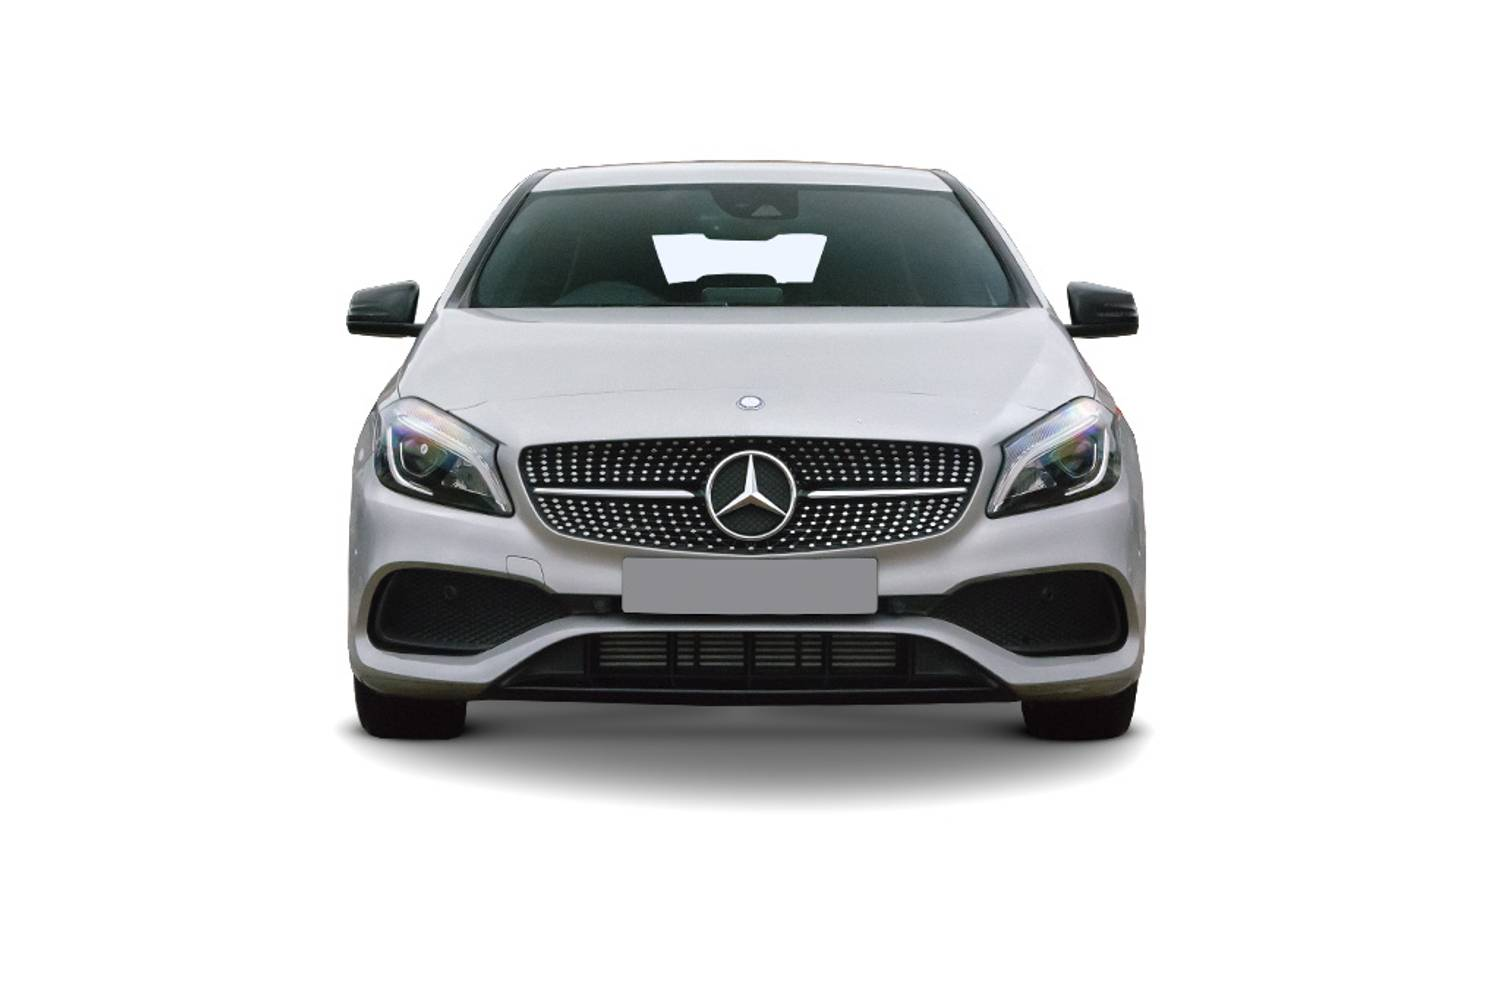 new mercedes benz a class hatchback a250 4matic amg 5 door auto 2015 for sale. Black Bedroom Furniture Sets. Home Design Ideas